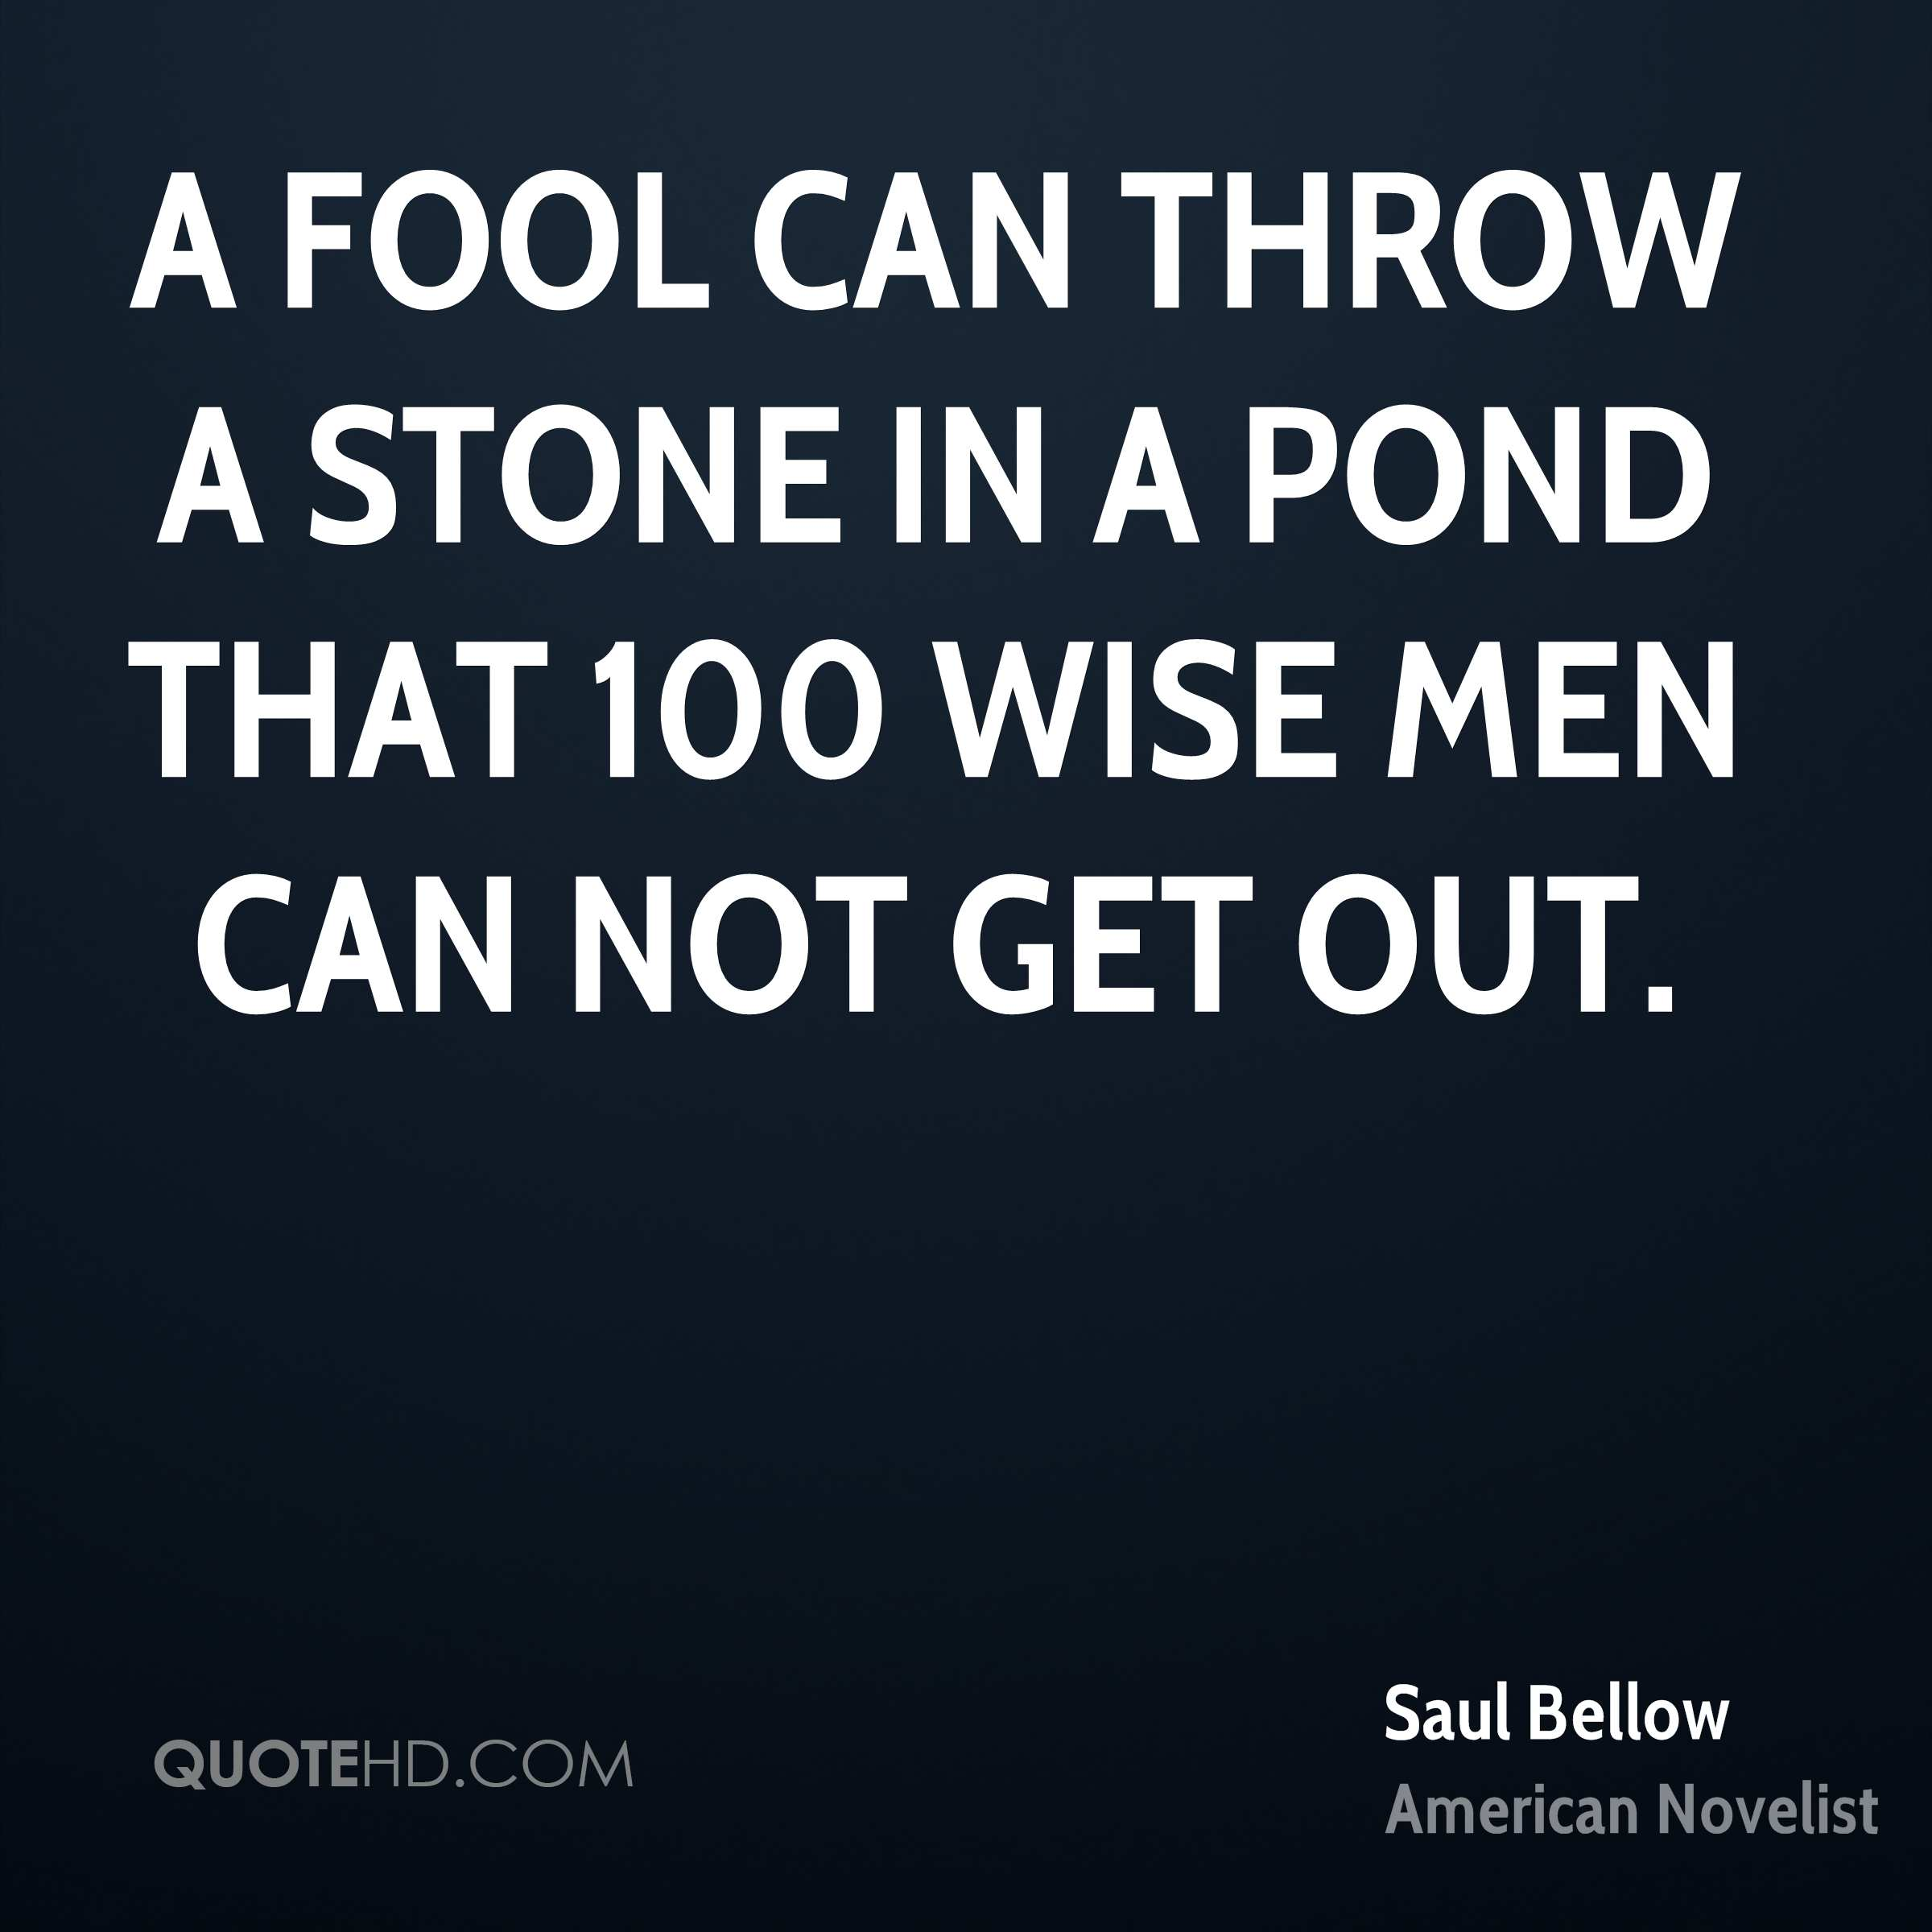 On Golden Pond Quotes Pond Quotes  Page 1  Quotehd